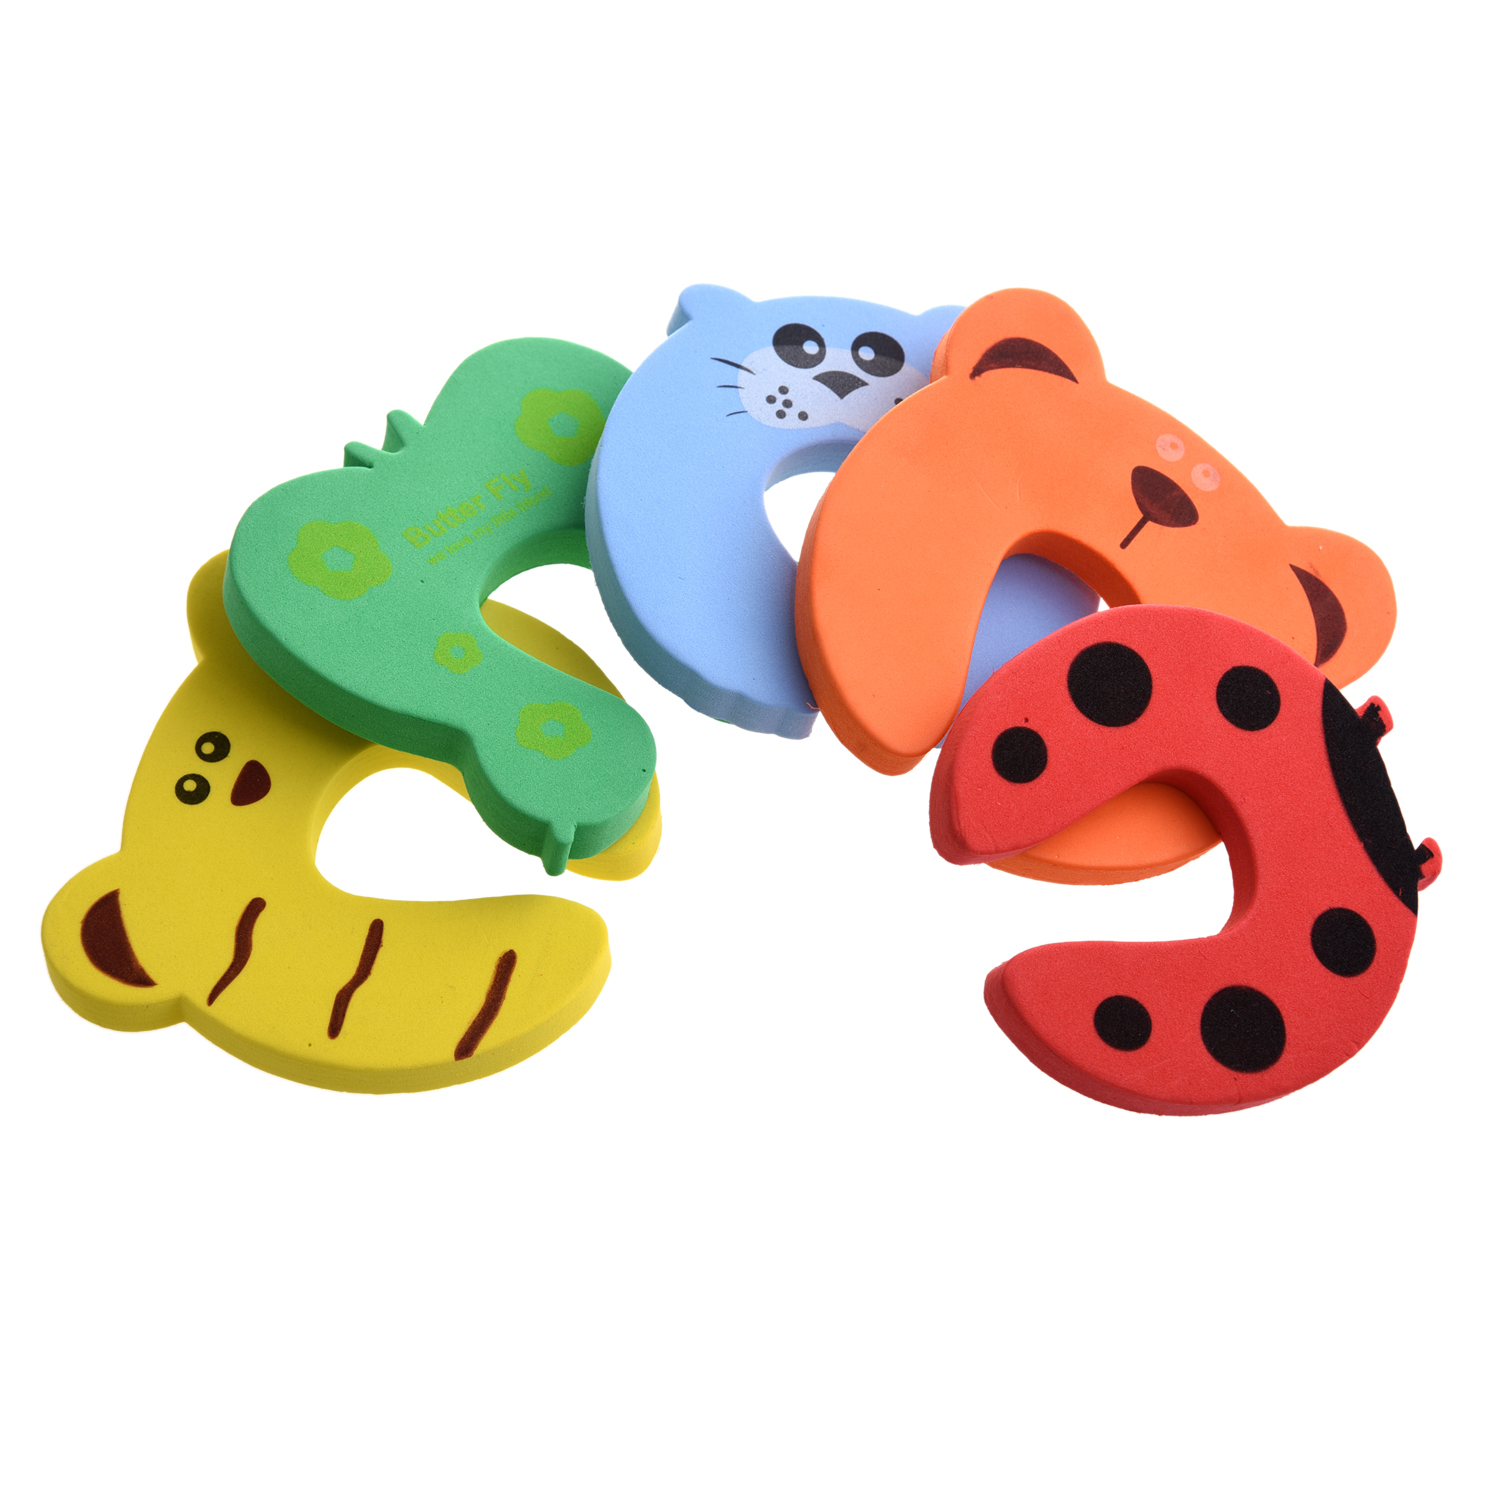 5 Packs 5x Baby Kids Door Jammer Finger Pinch Guard Child Toddler Infant Safety Protector Stopper Cute Animal Designs hot sale 4pcs lot cute pack baby safety animal door stop finger pinch guard 18